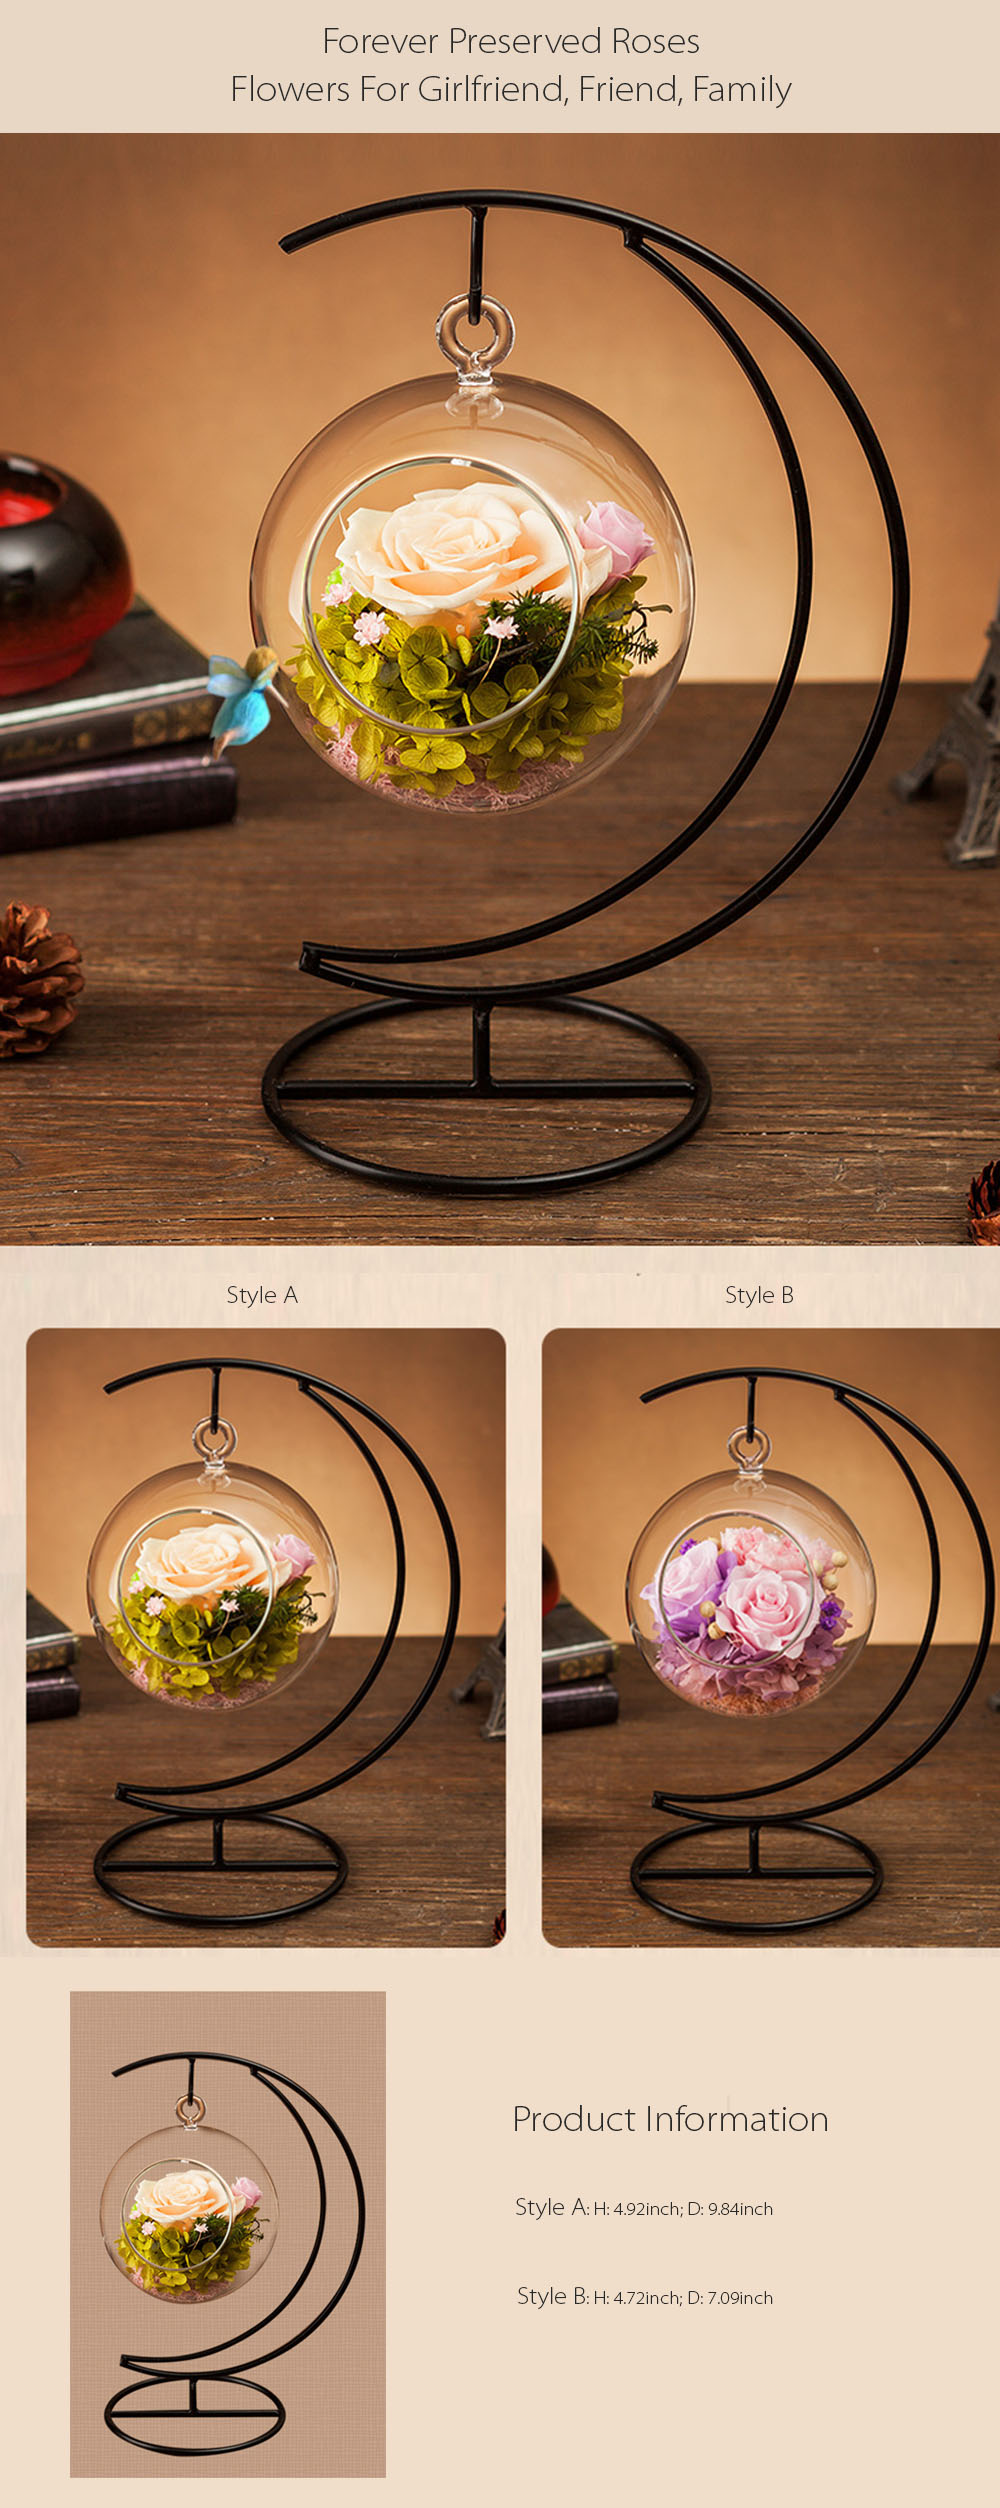 Forever Love Rose Ball with Metal Stand Keep the Spring Inside